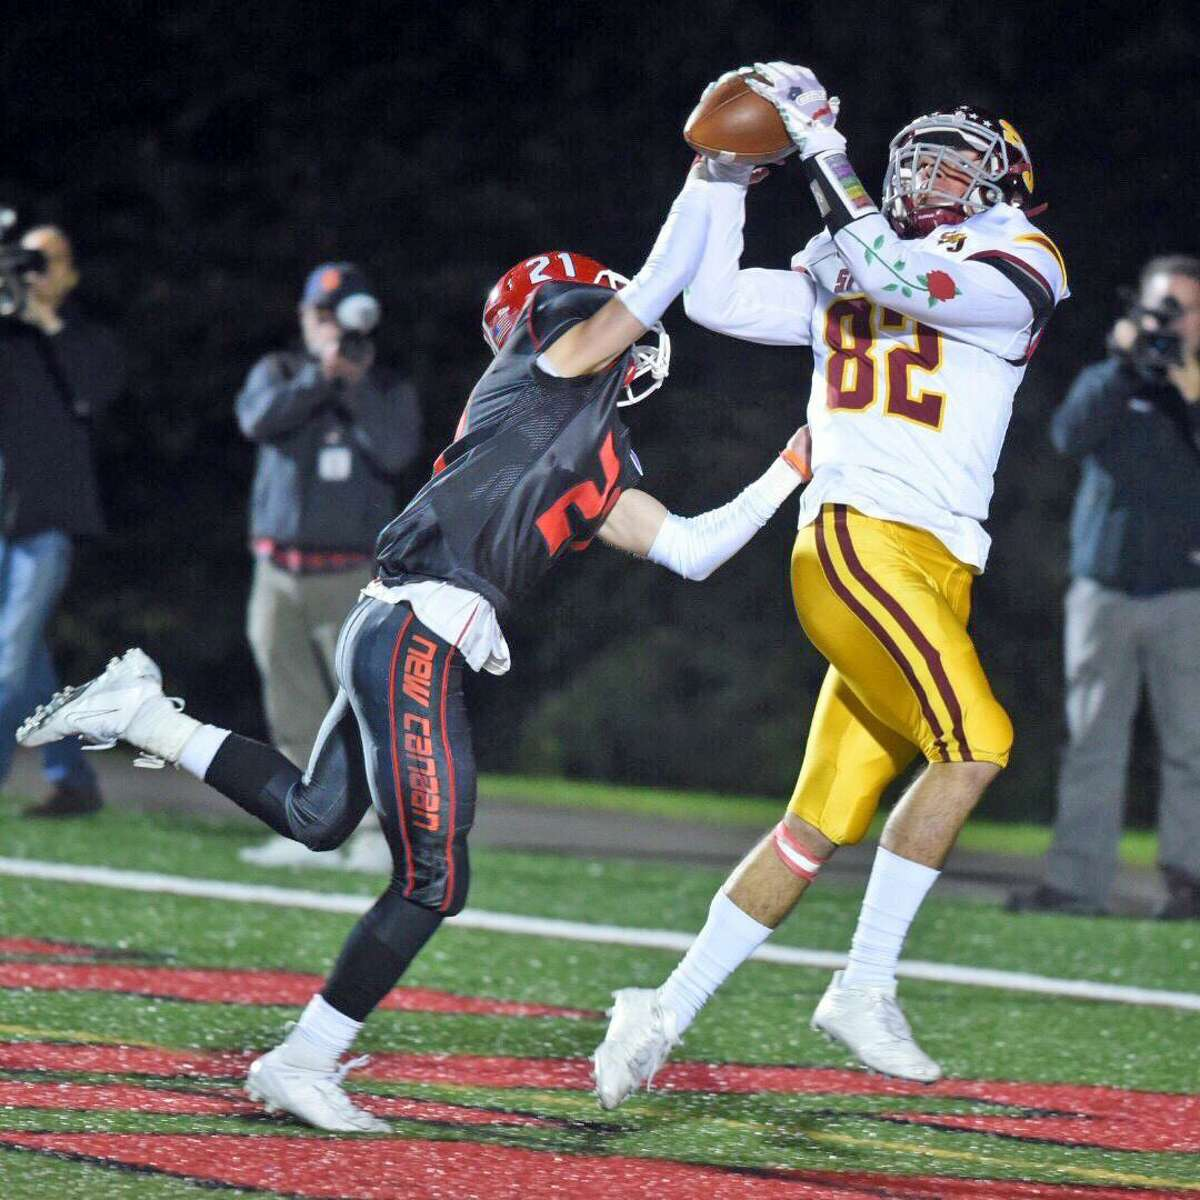 St. Joseph's Will Diamantis catches a touchdown pass from Jack Wallace with New Canaan's Dean Ciancio defending during the Cadets' 58-14 victory on Friday at Dunning Field in New Canaan.